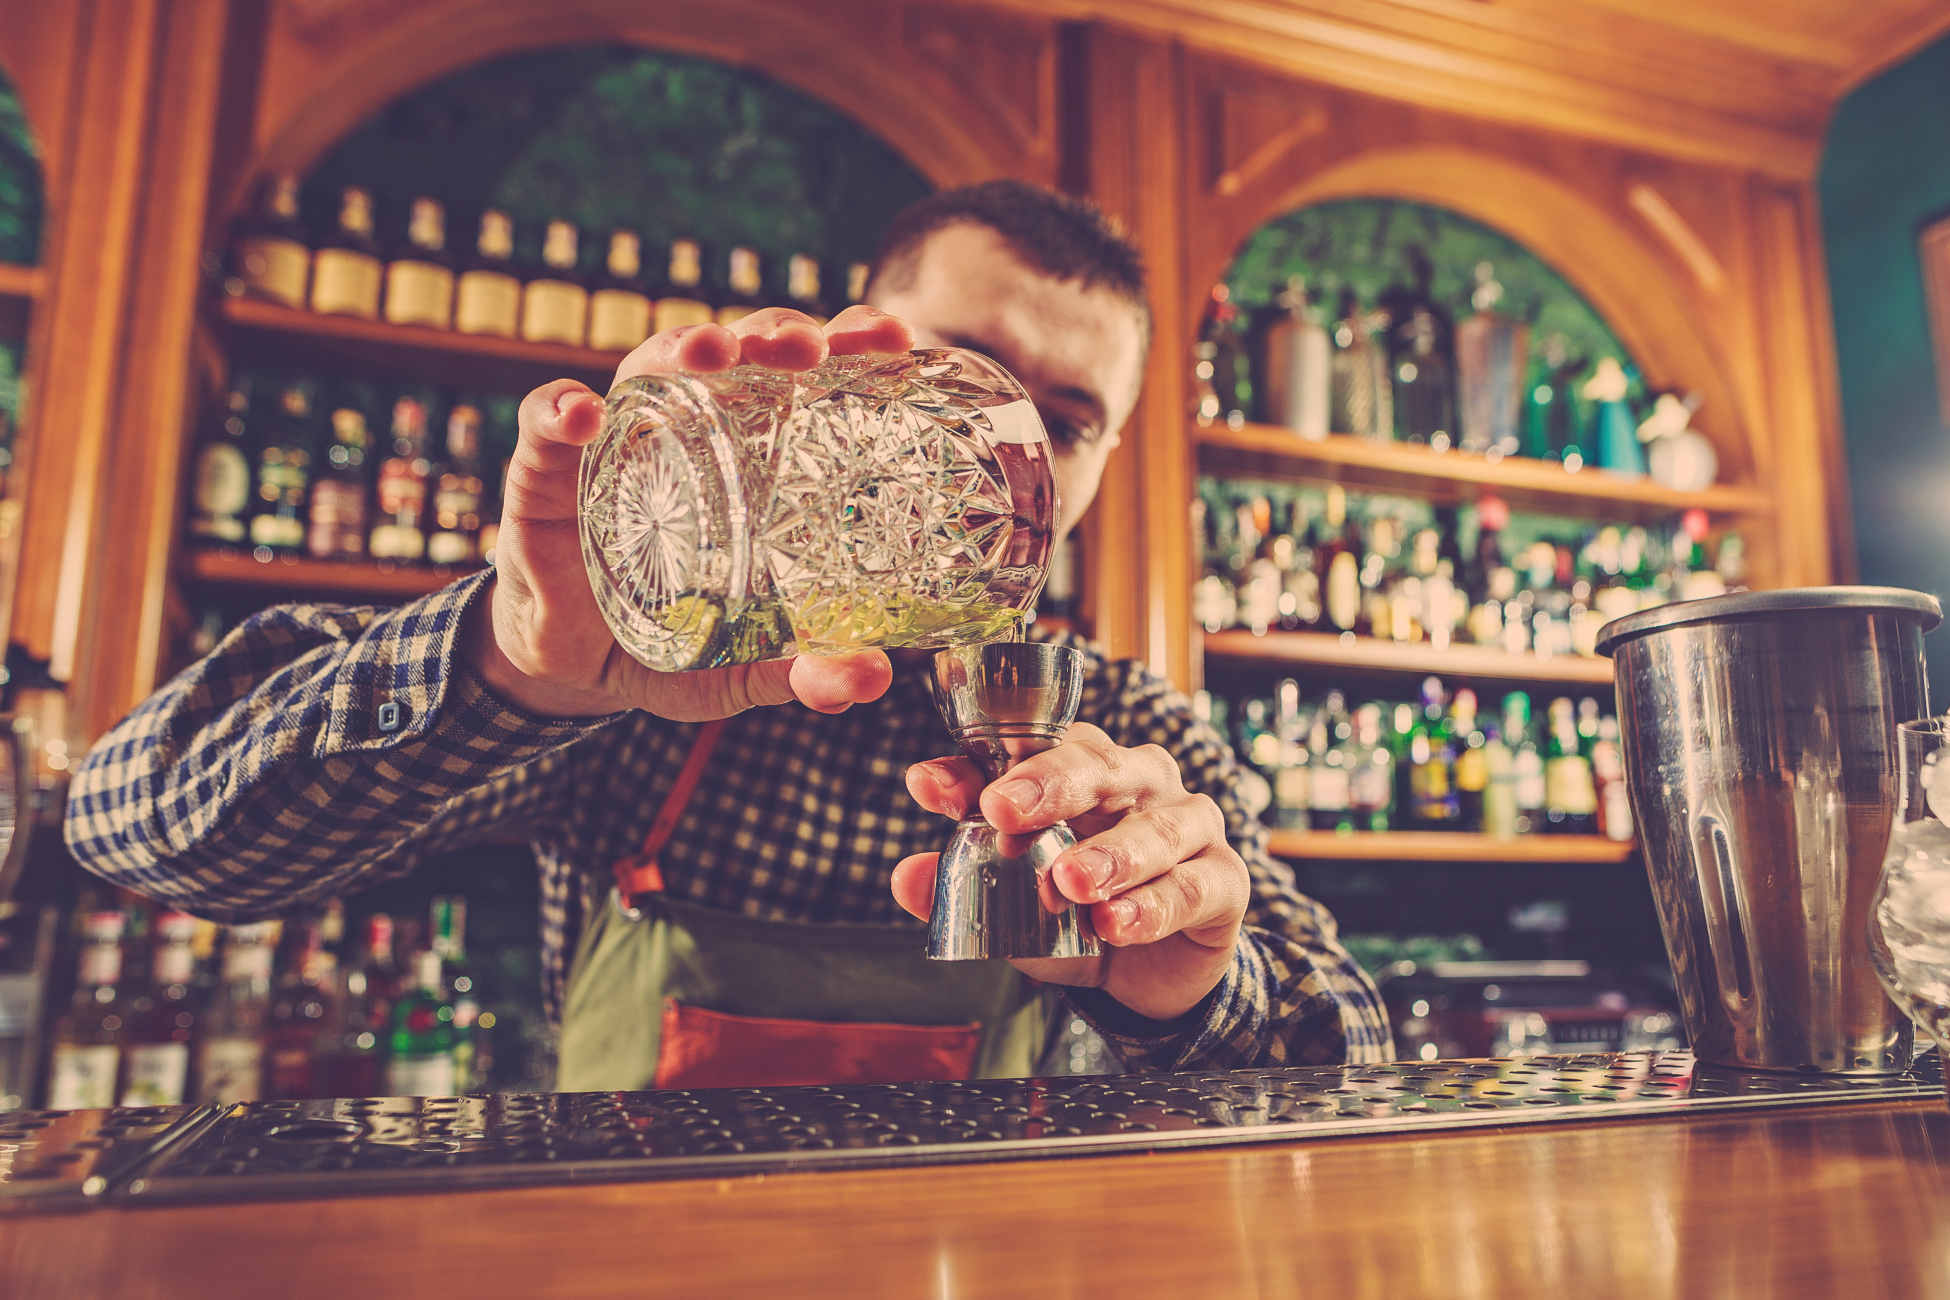 The barman making an alcoholic cocktail at the bar counter on the bar background